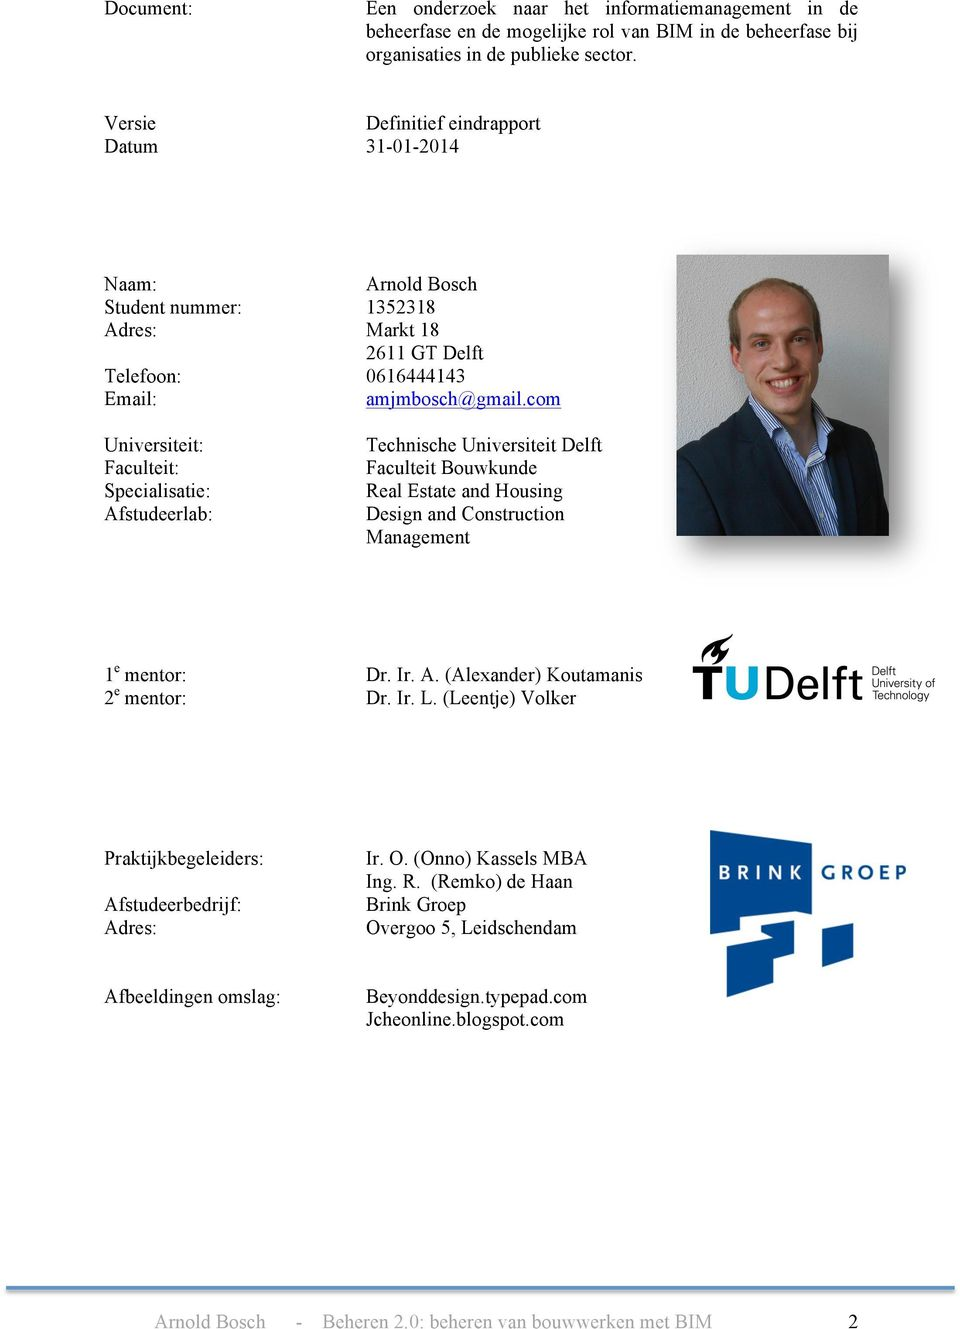 com Telefoon: Email: Universiteit: Faculteit: Specialisatie: Afstudeerlab: Technische Universiteit Delft Faculteit Bouwkunde Real Estate and Housing Design and Construction Management 1e mentor: 2e